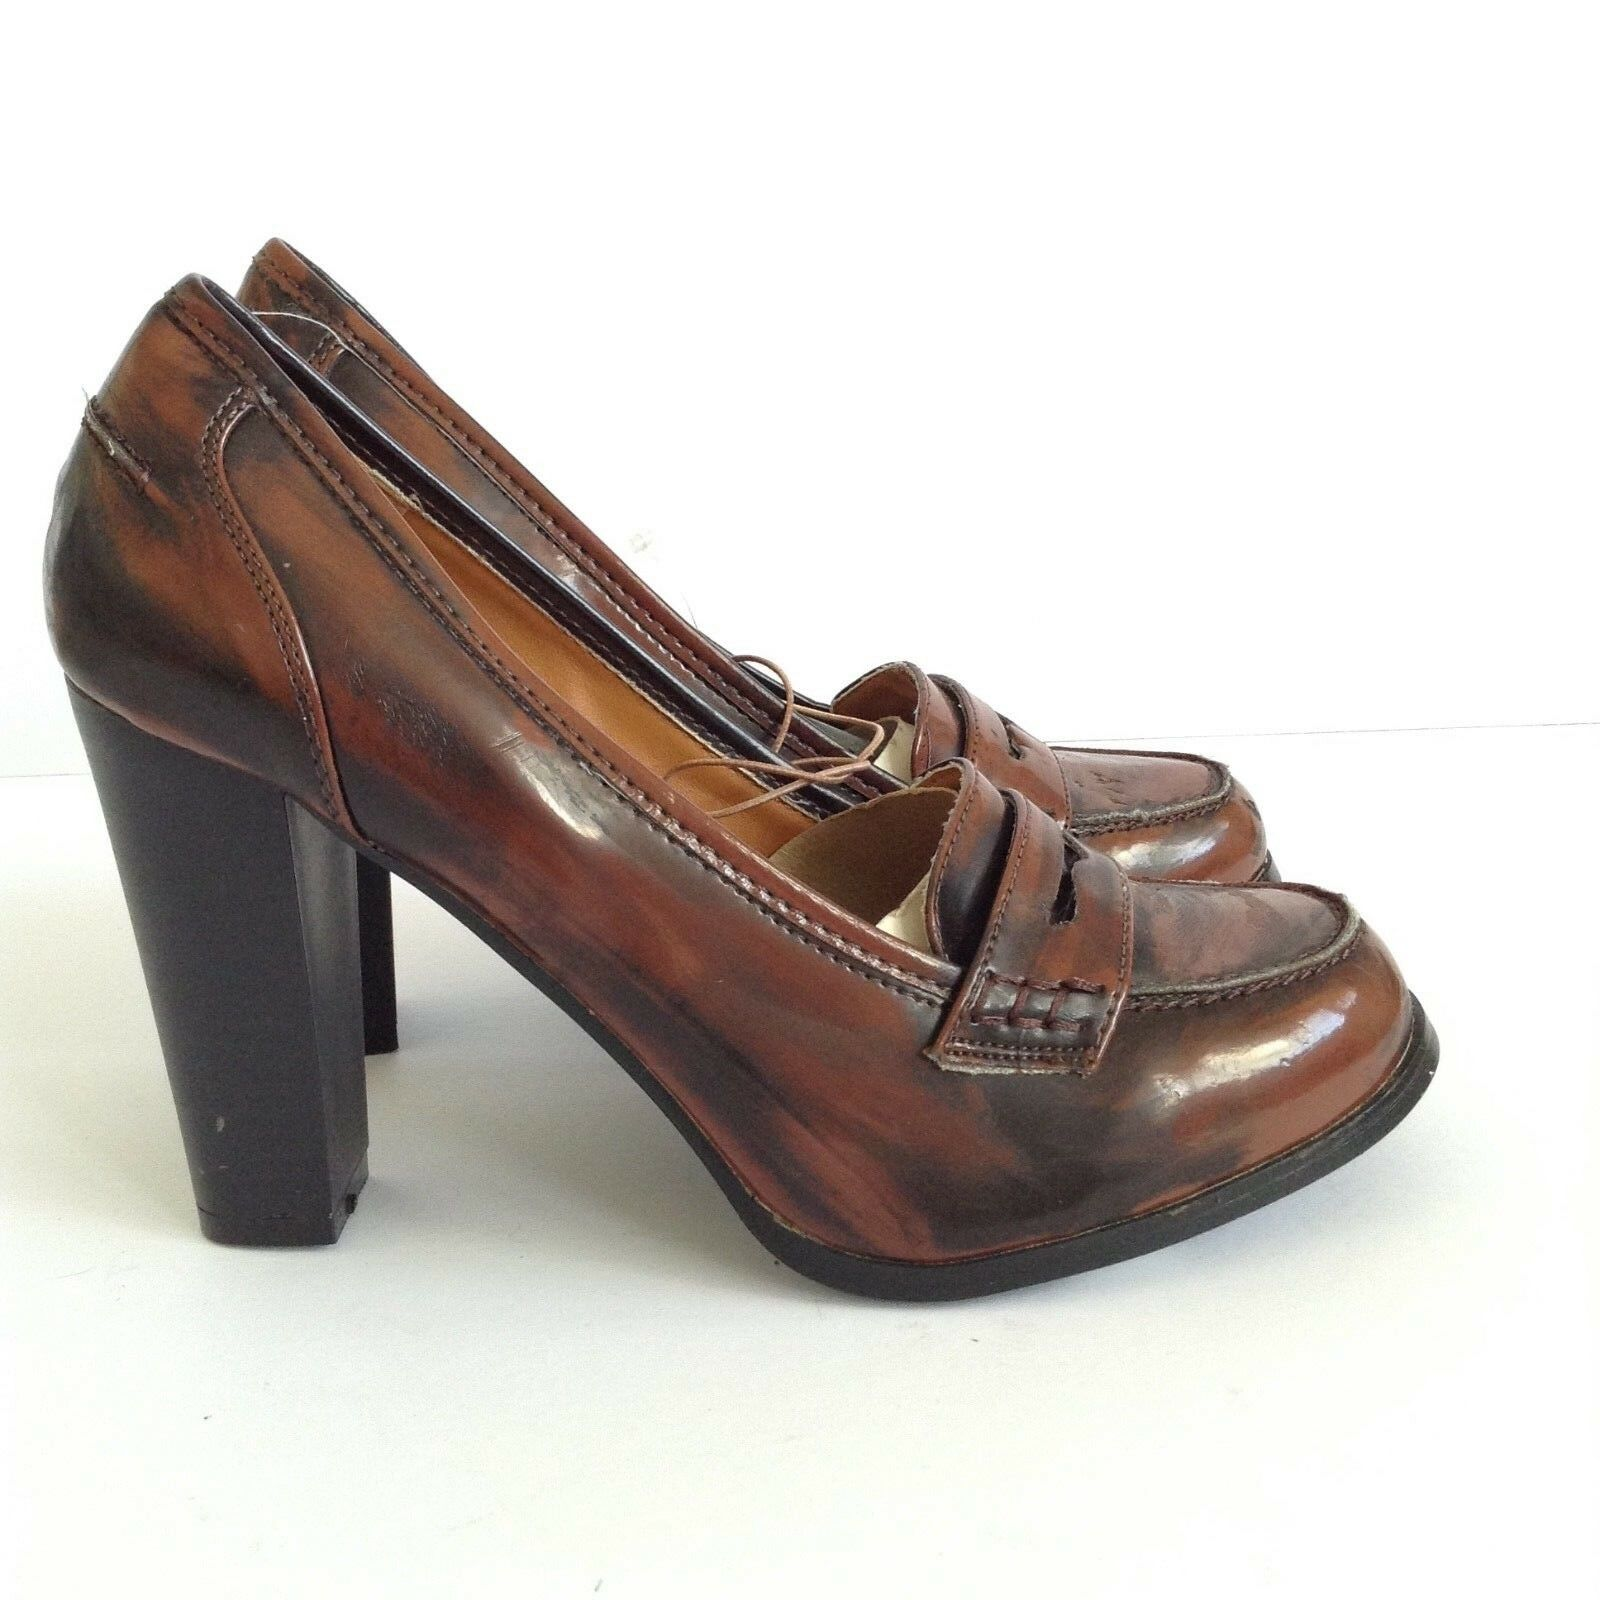 RED HERRING LADIES SANNA BLOCK PAT HI HEEL COURT SHOES SIZE 6 BROWN NEW